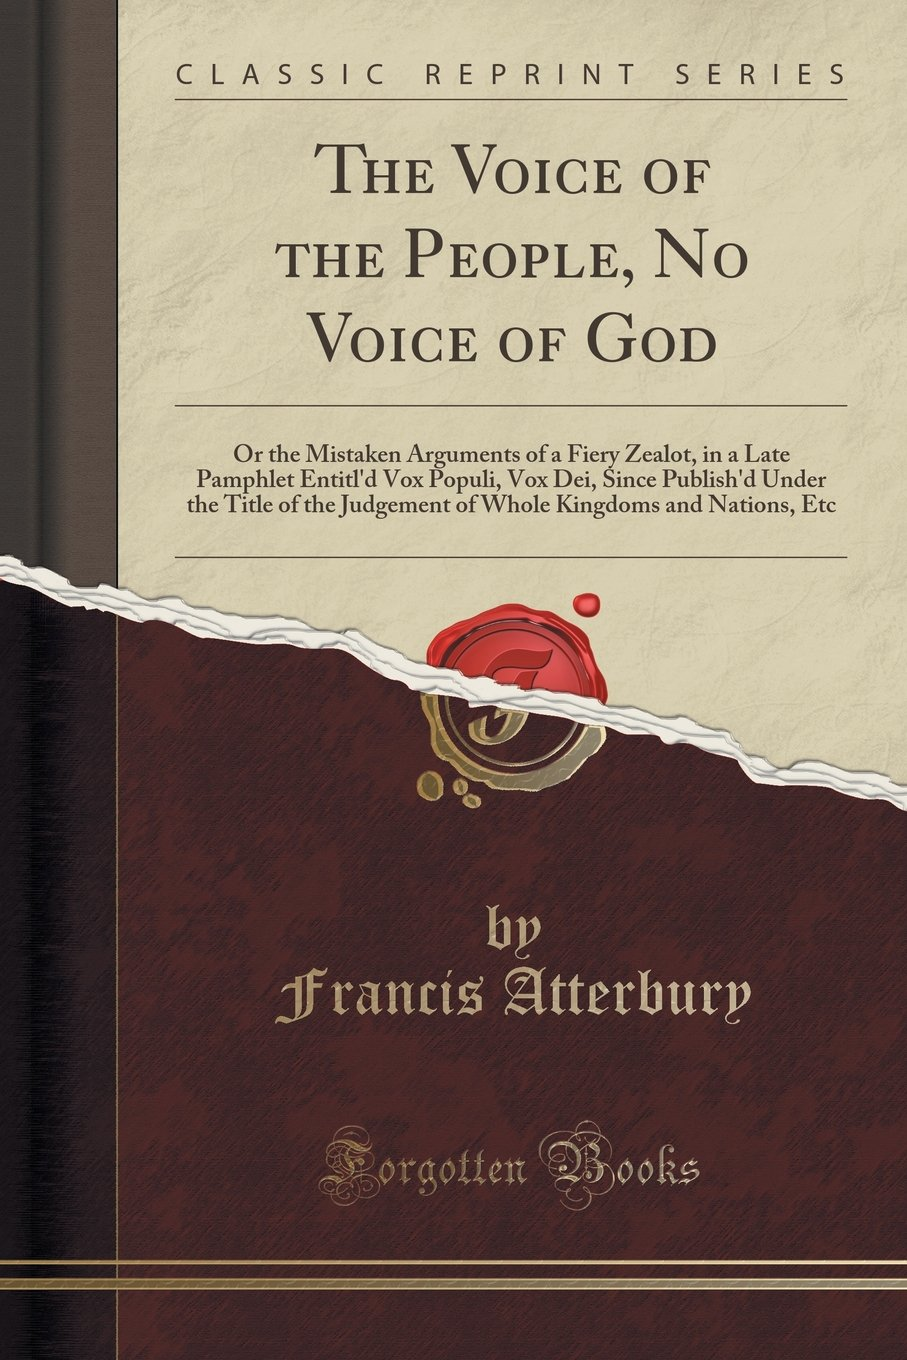 59cc3ad065463 The Voice of the People, No Voice of God: Or the Mistaken Arguments of a  Fiery Zealot, in a Late Pamphlet Entitl'd Vox Populi, Vox Dei, Since .